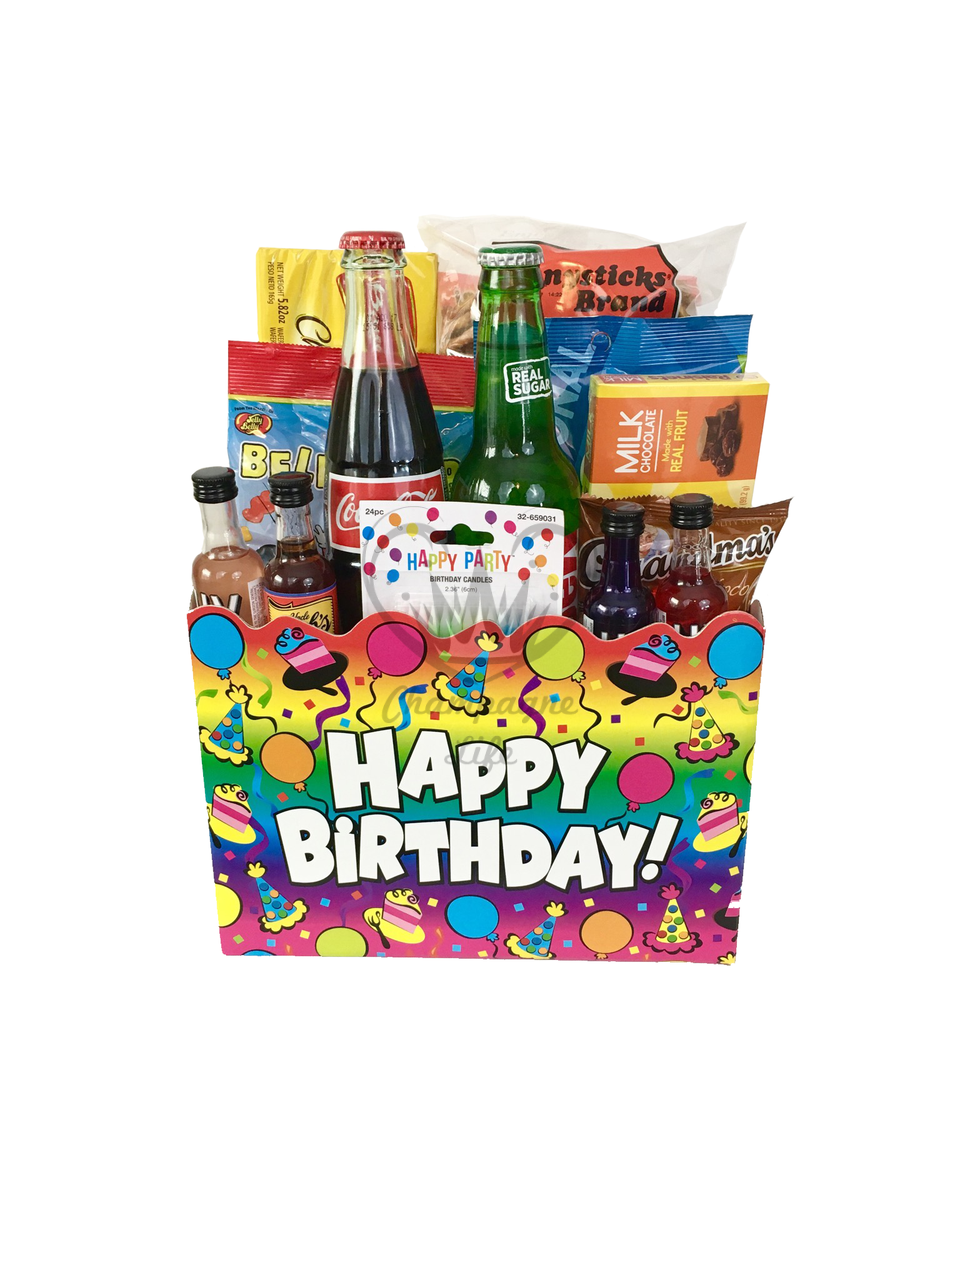 The Happy Birthday Gift Box Is Available For Same Day Delivery In Las Vegas NV Gourmet Food Baskets Corporate Gifts Or Build Your Own Custom Basket